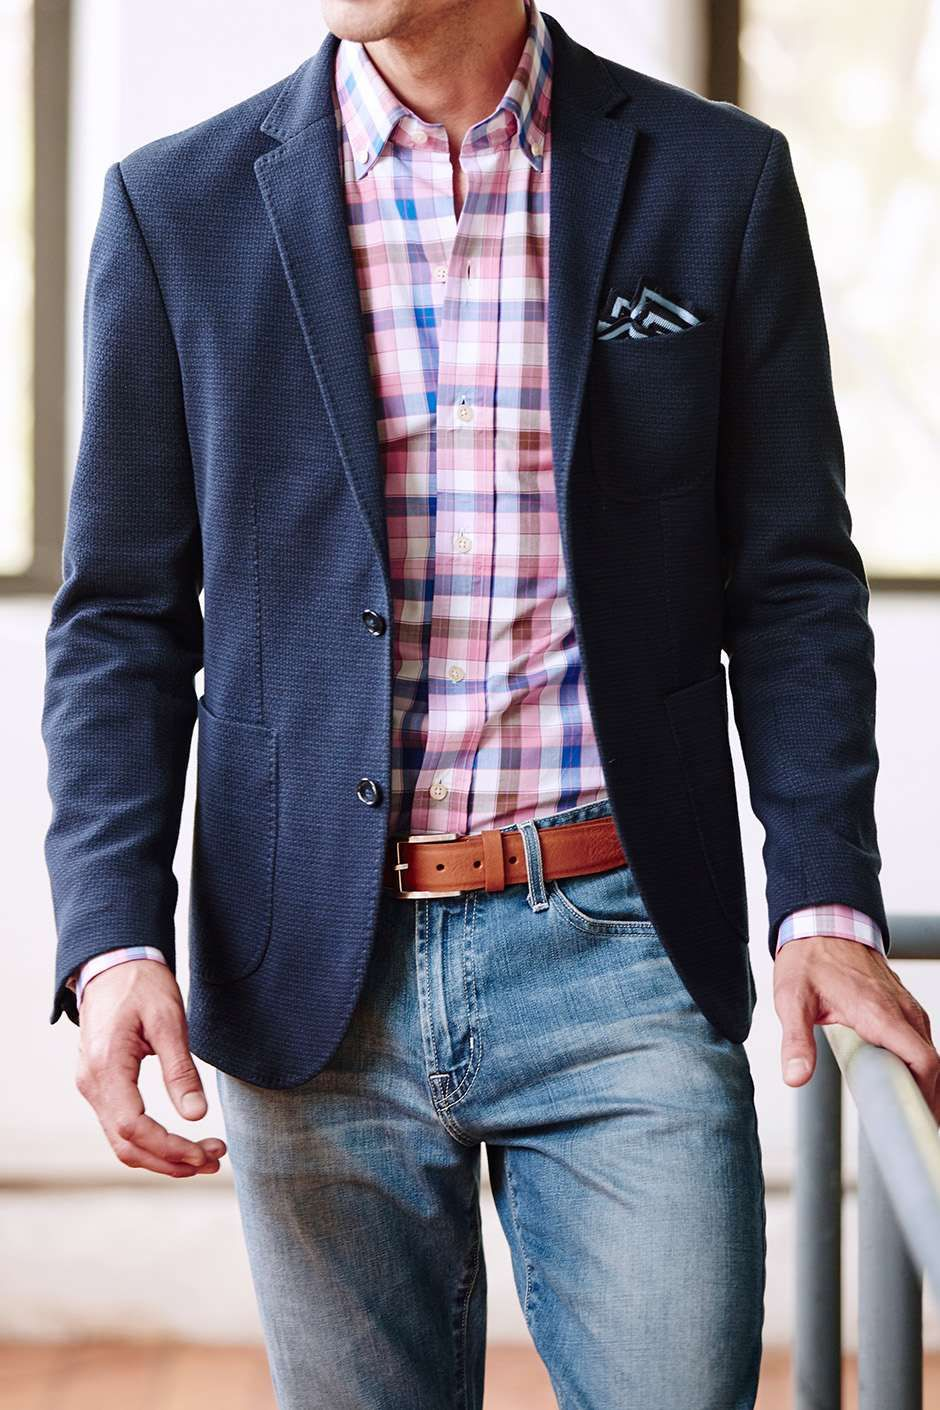 AG Jeans Trunk Club Sports coat and jeans, Mens